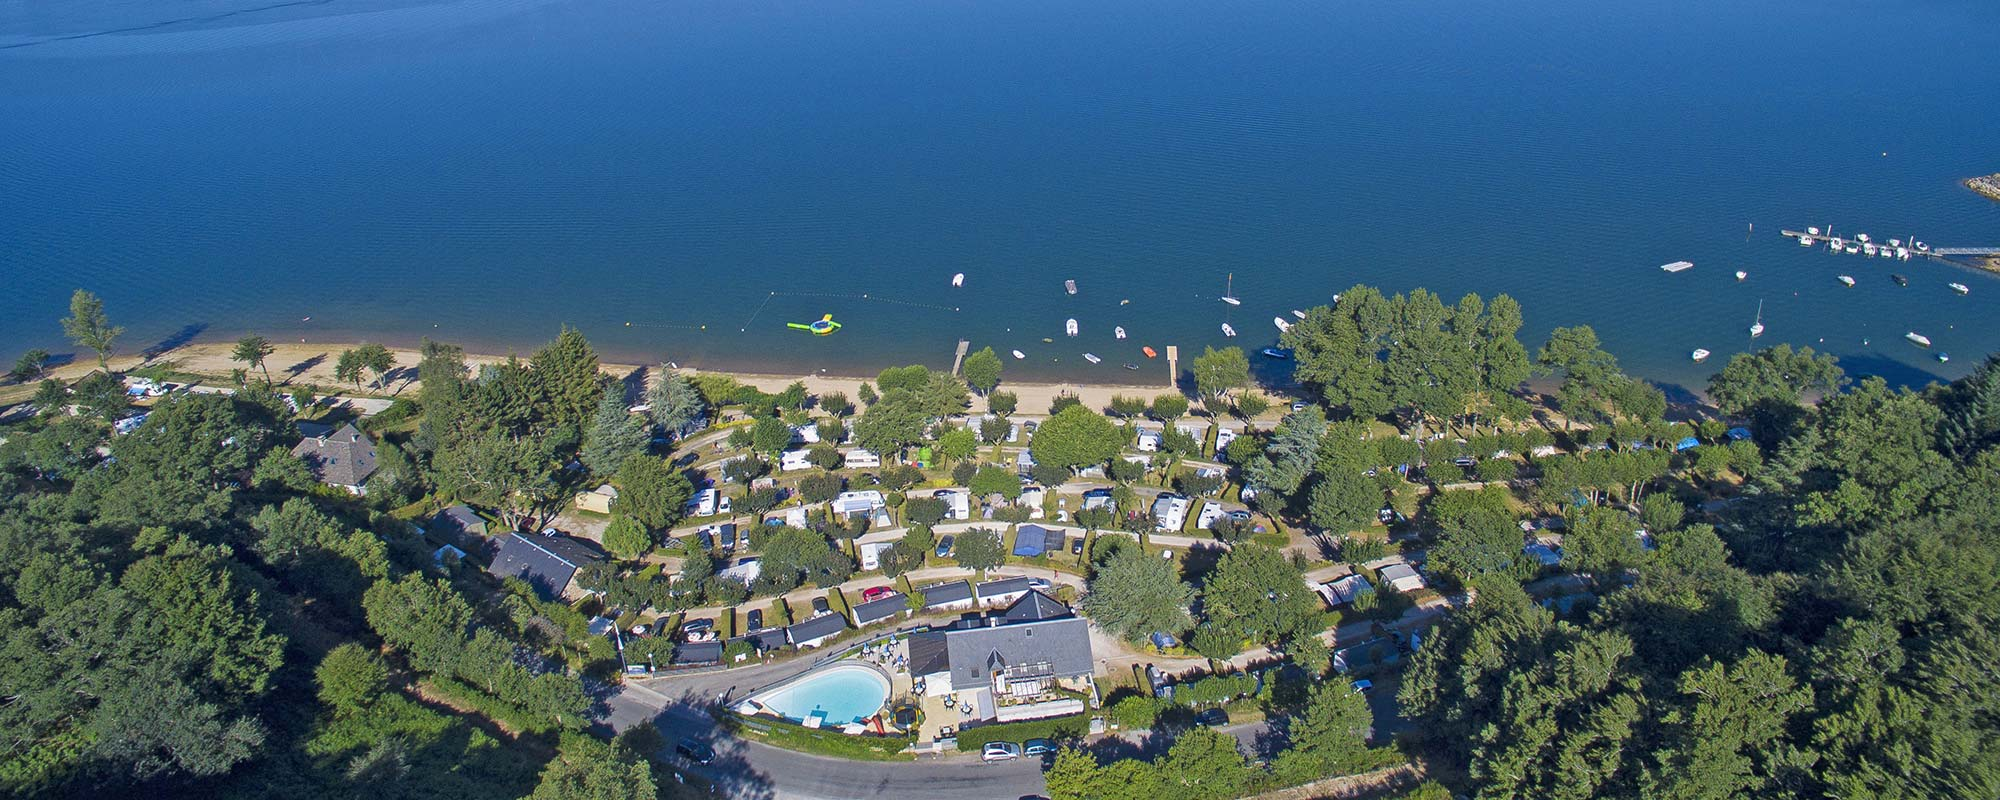 Contact camping Beau Rivage Aveyron